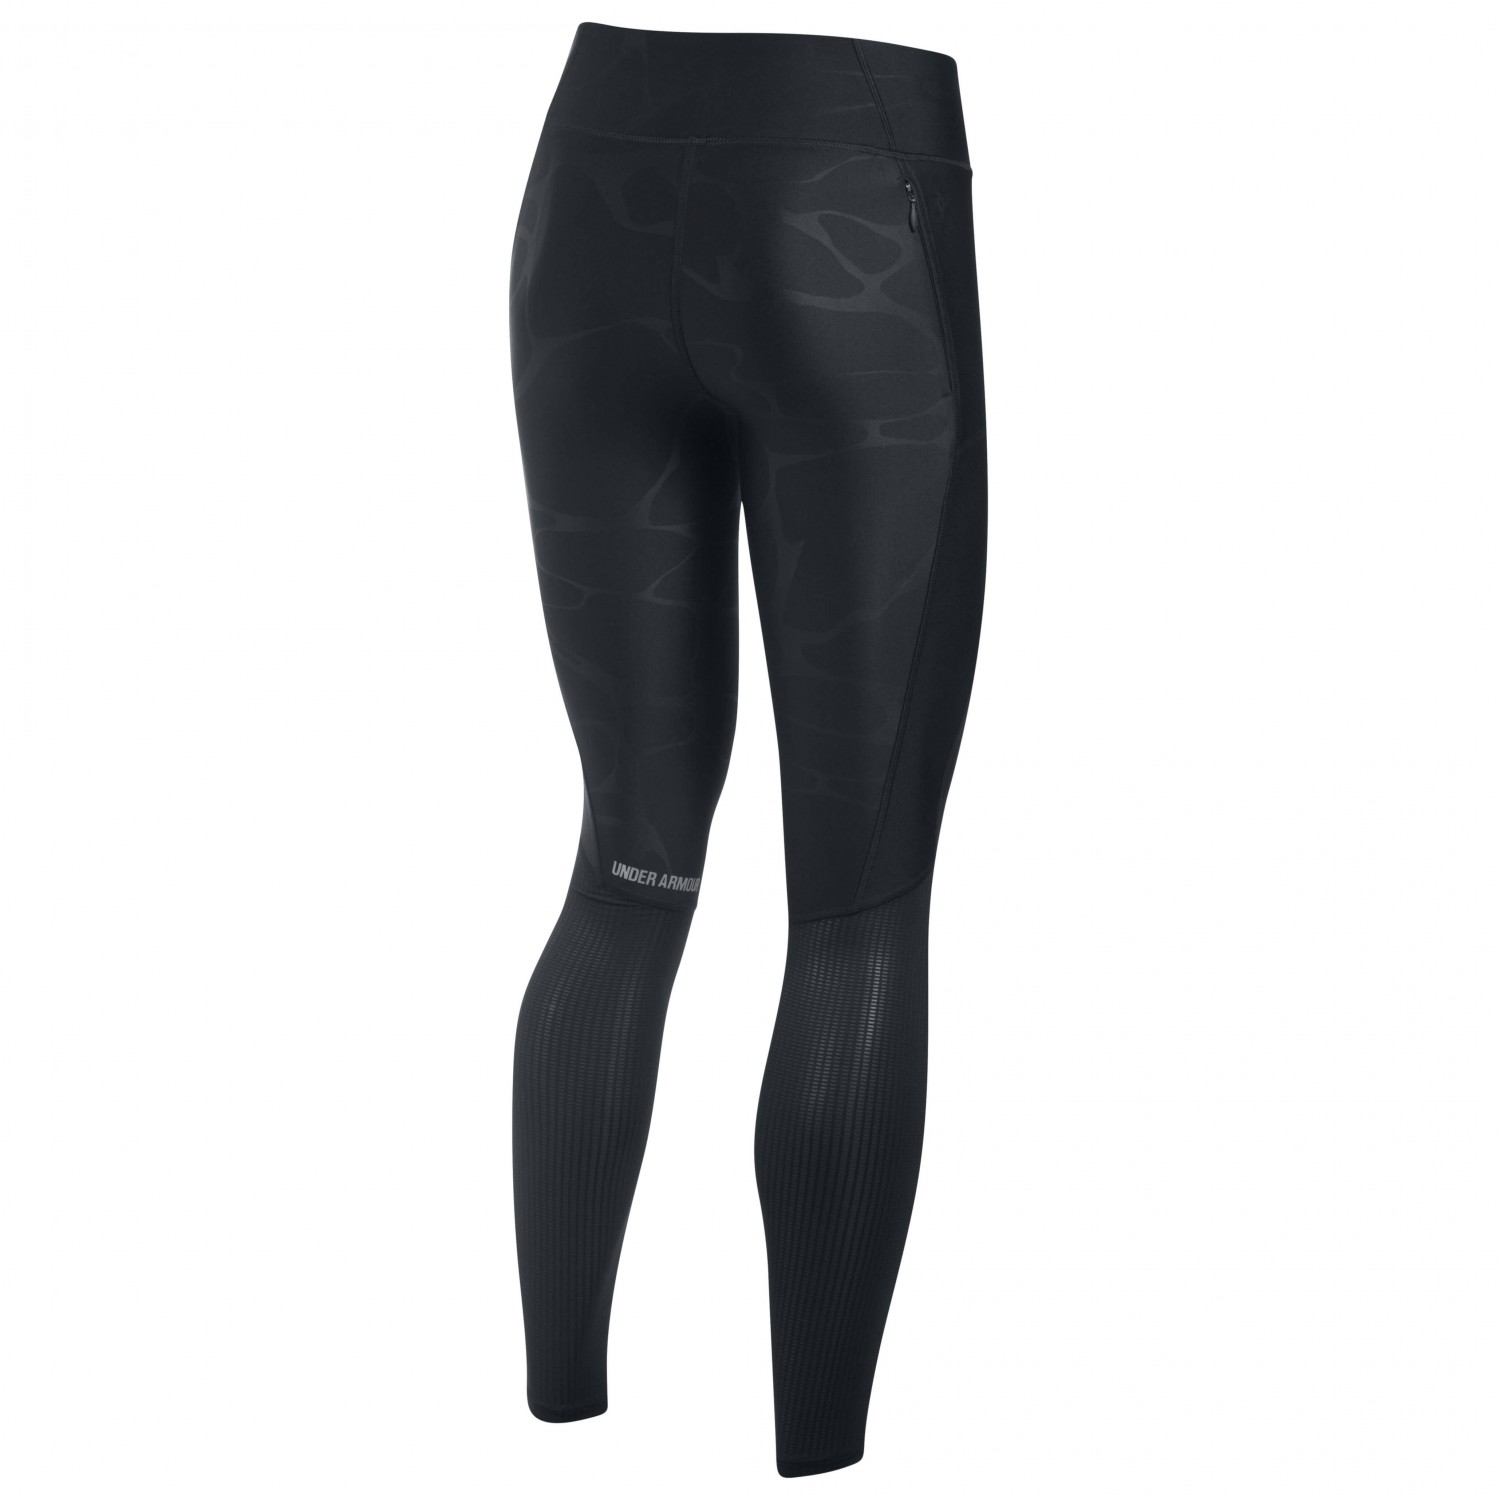 5ed9f581da7e0 Under Armour Fly By Printed Legging - Running Trousers Women's | Buy online  | Alpinetrek.co.uk